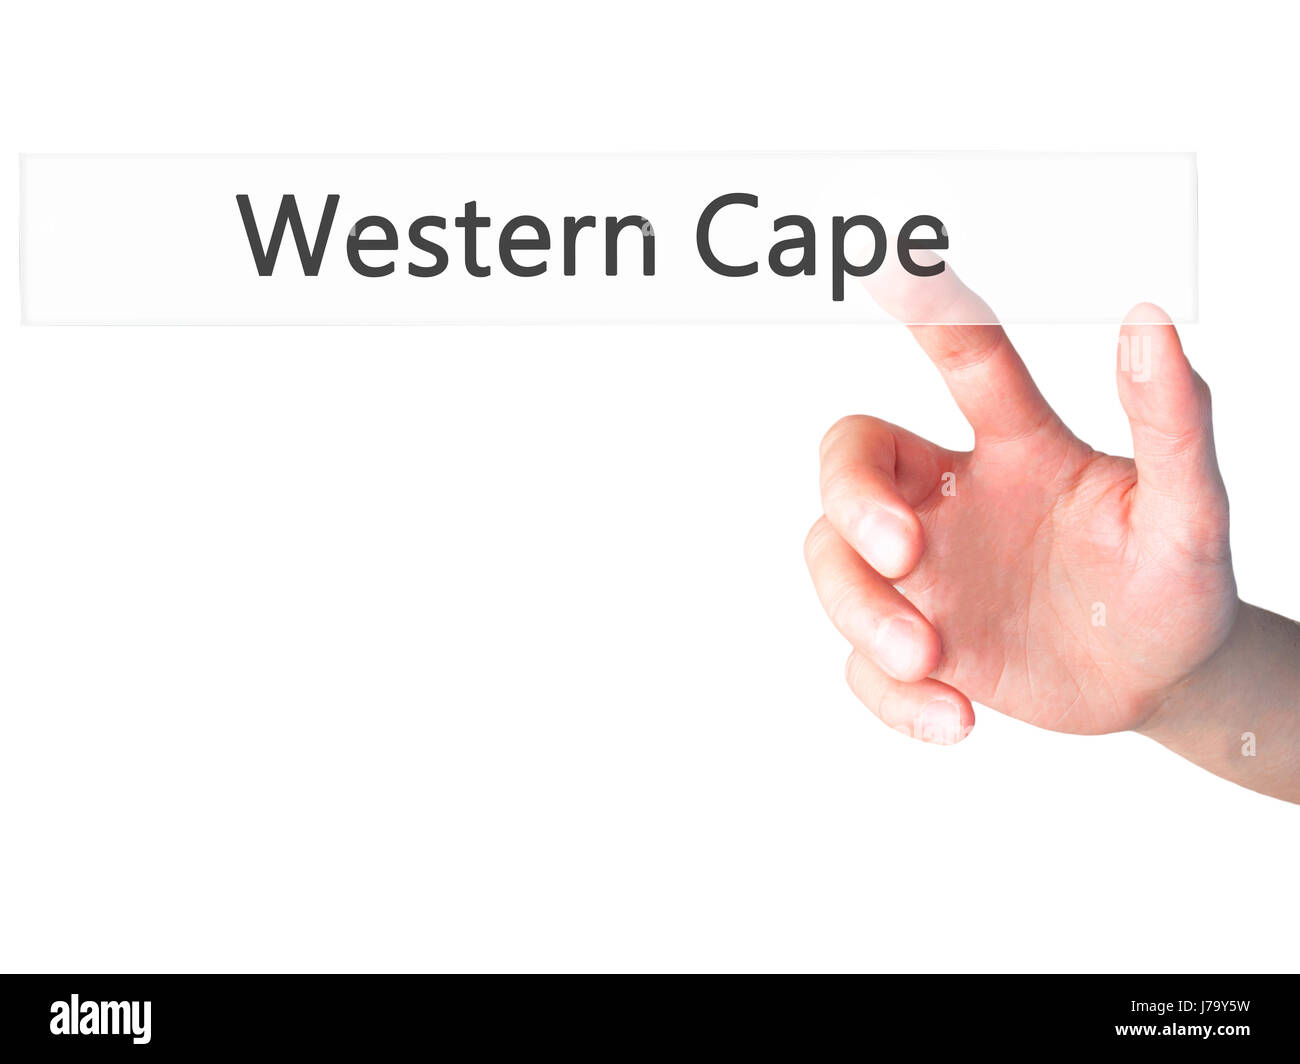 Western Cape - Hand pressing a button on blurred background concept . Business, technology, internet concept. Stock - Stock Image